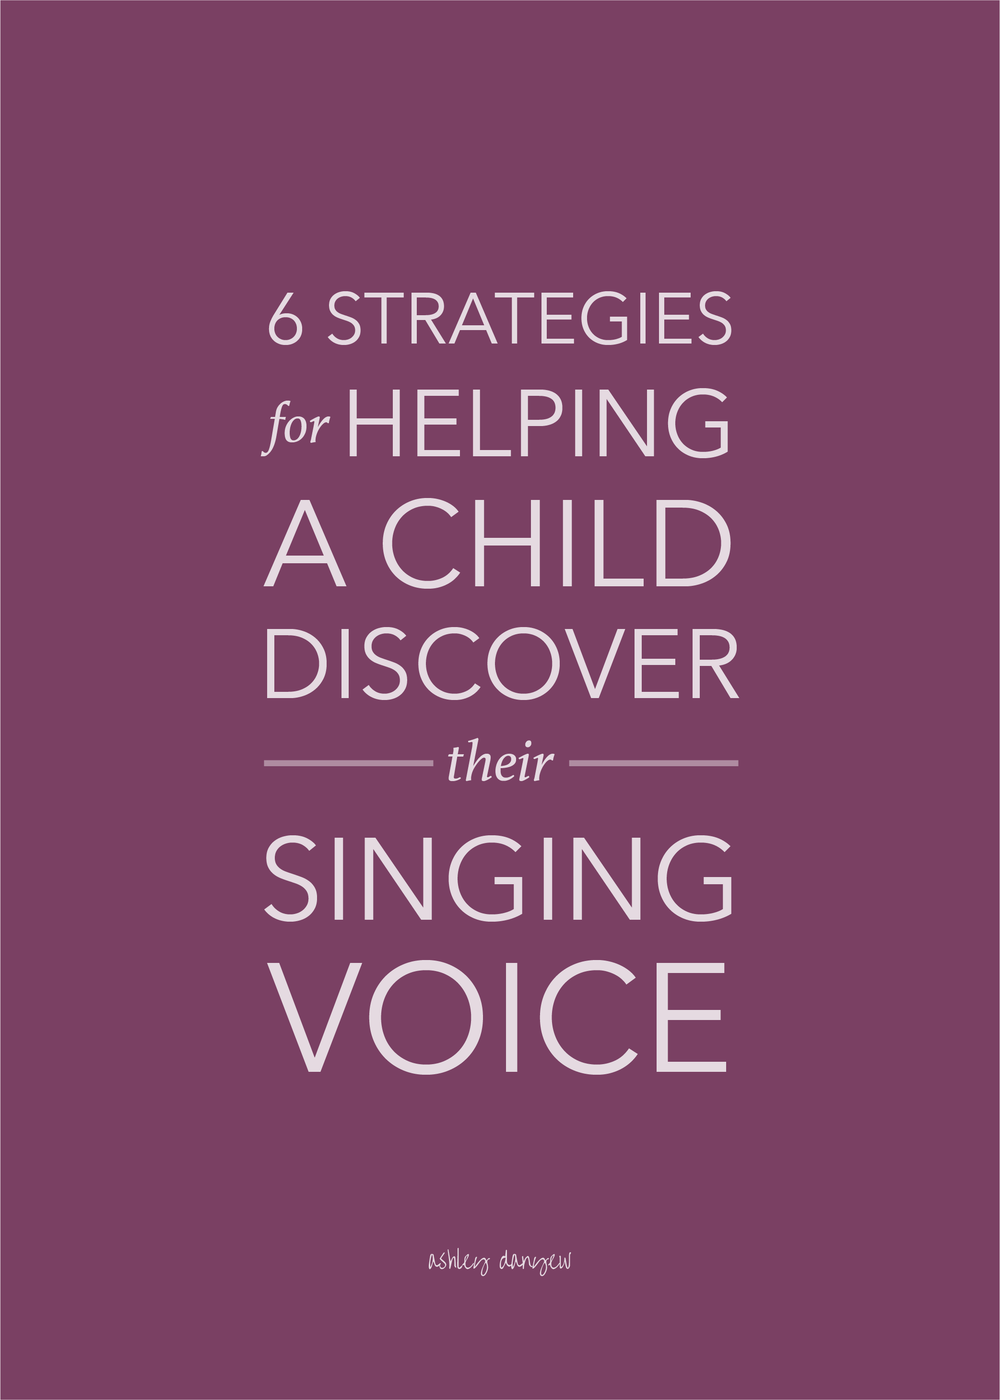 Copy of 6 Strategies for Helping a Child Discover Their Singing Voice